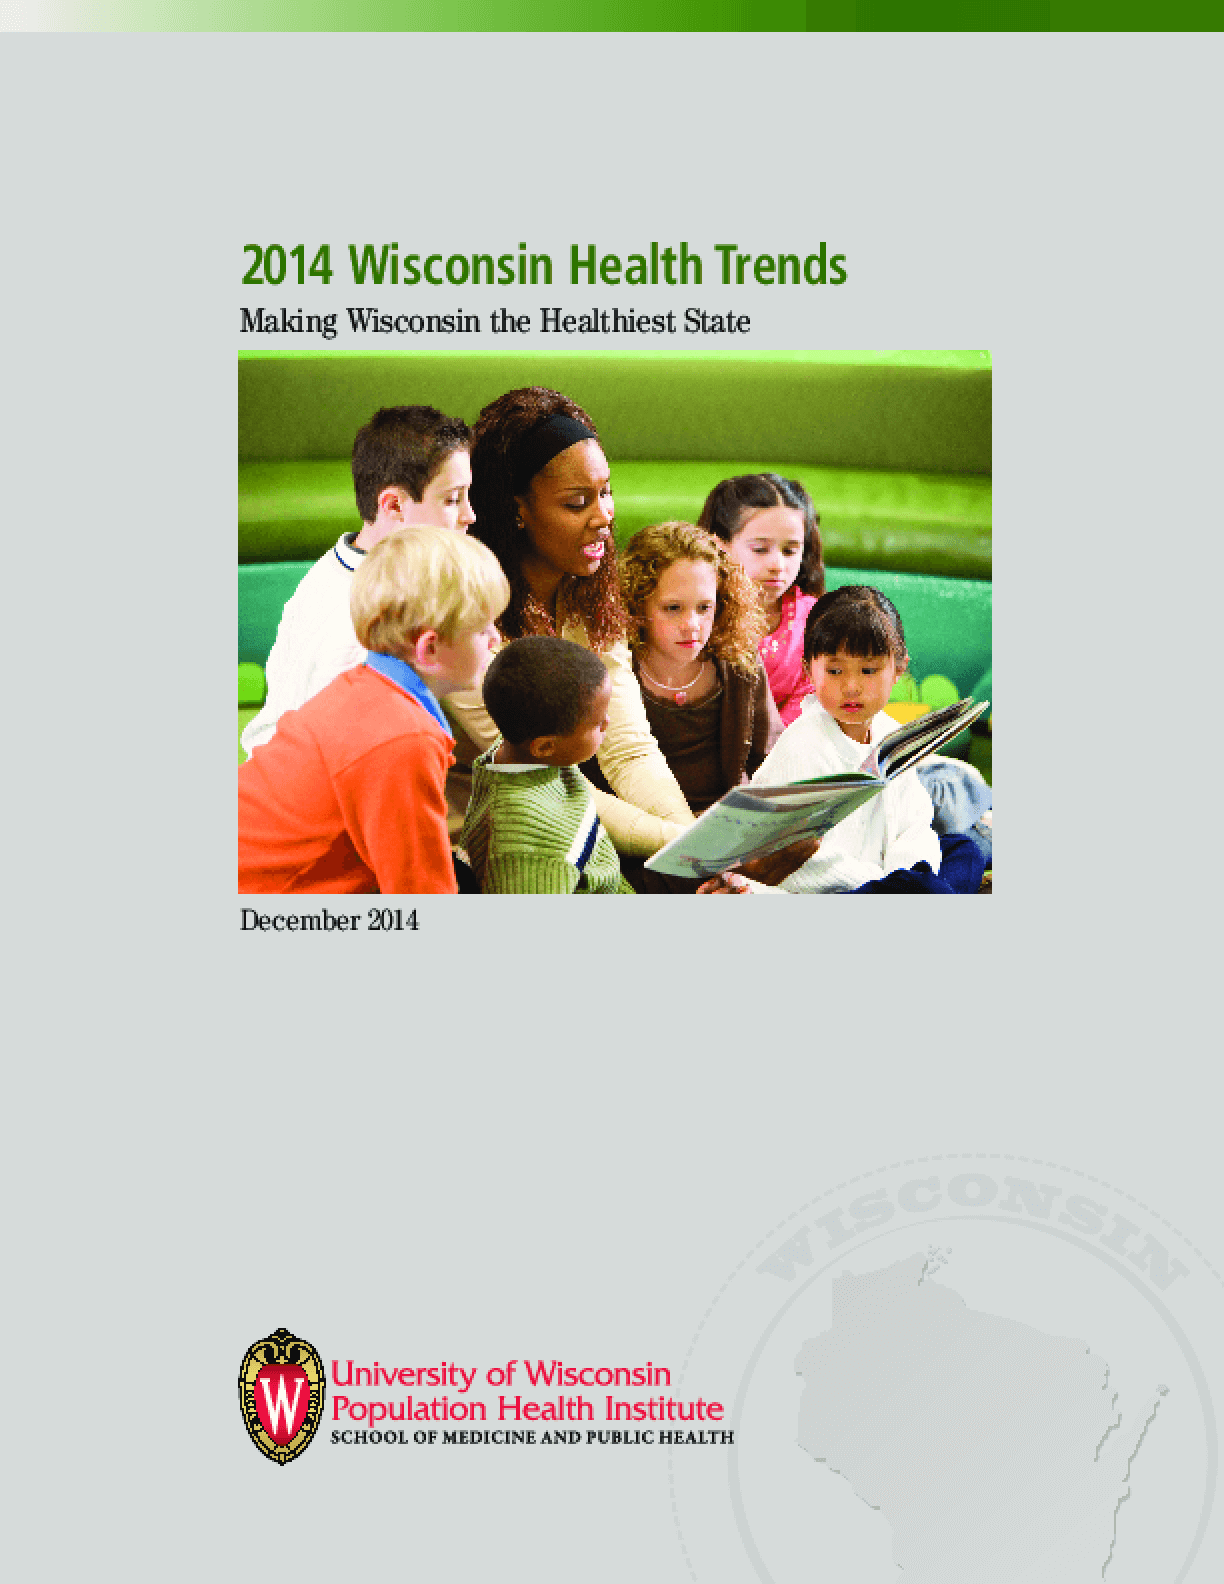 2014 Wisconsin Health Trends: Making Wisconsin the Healthiest State